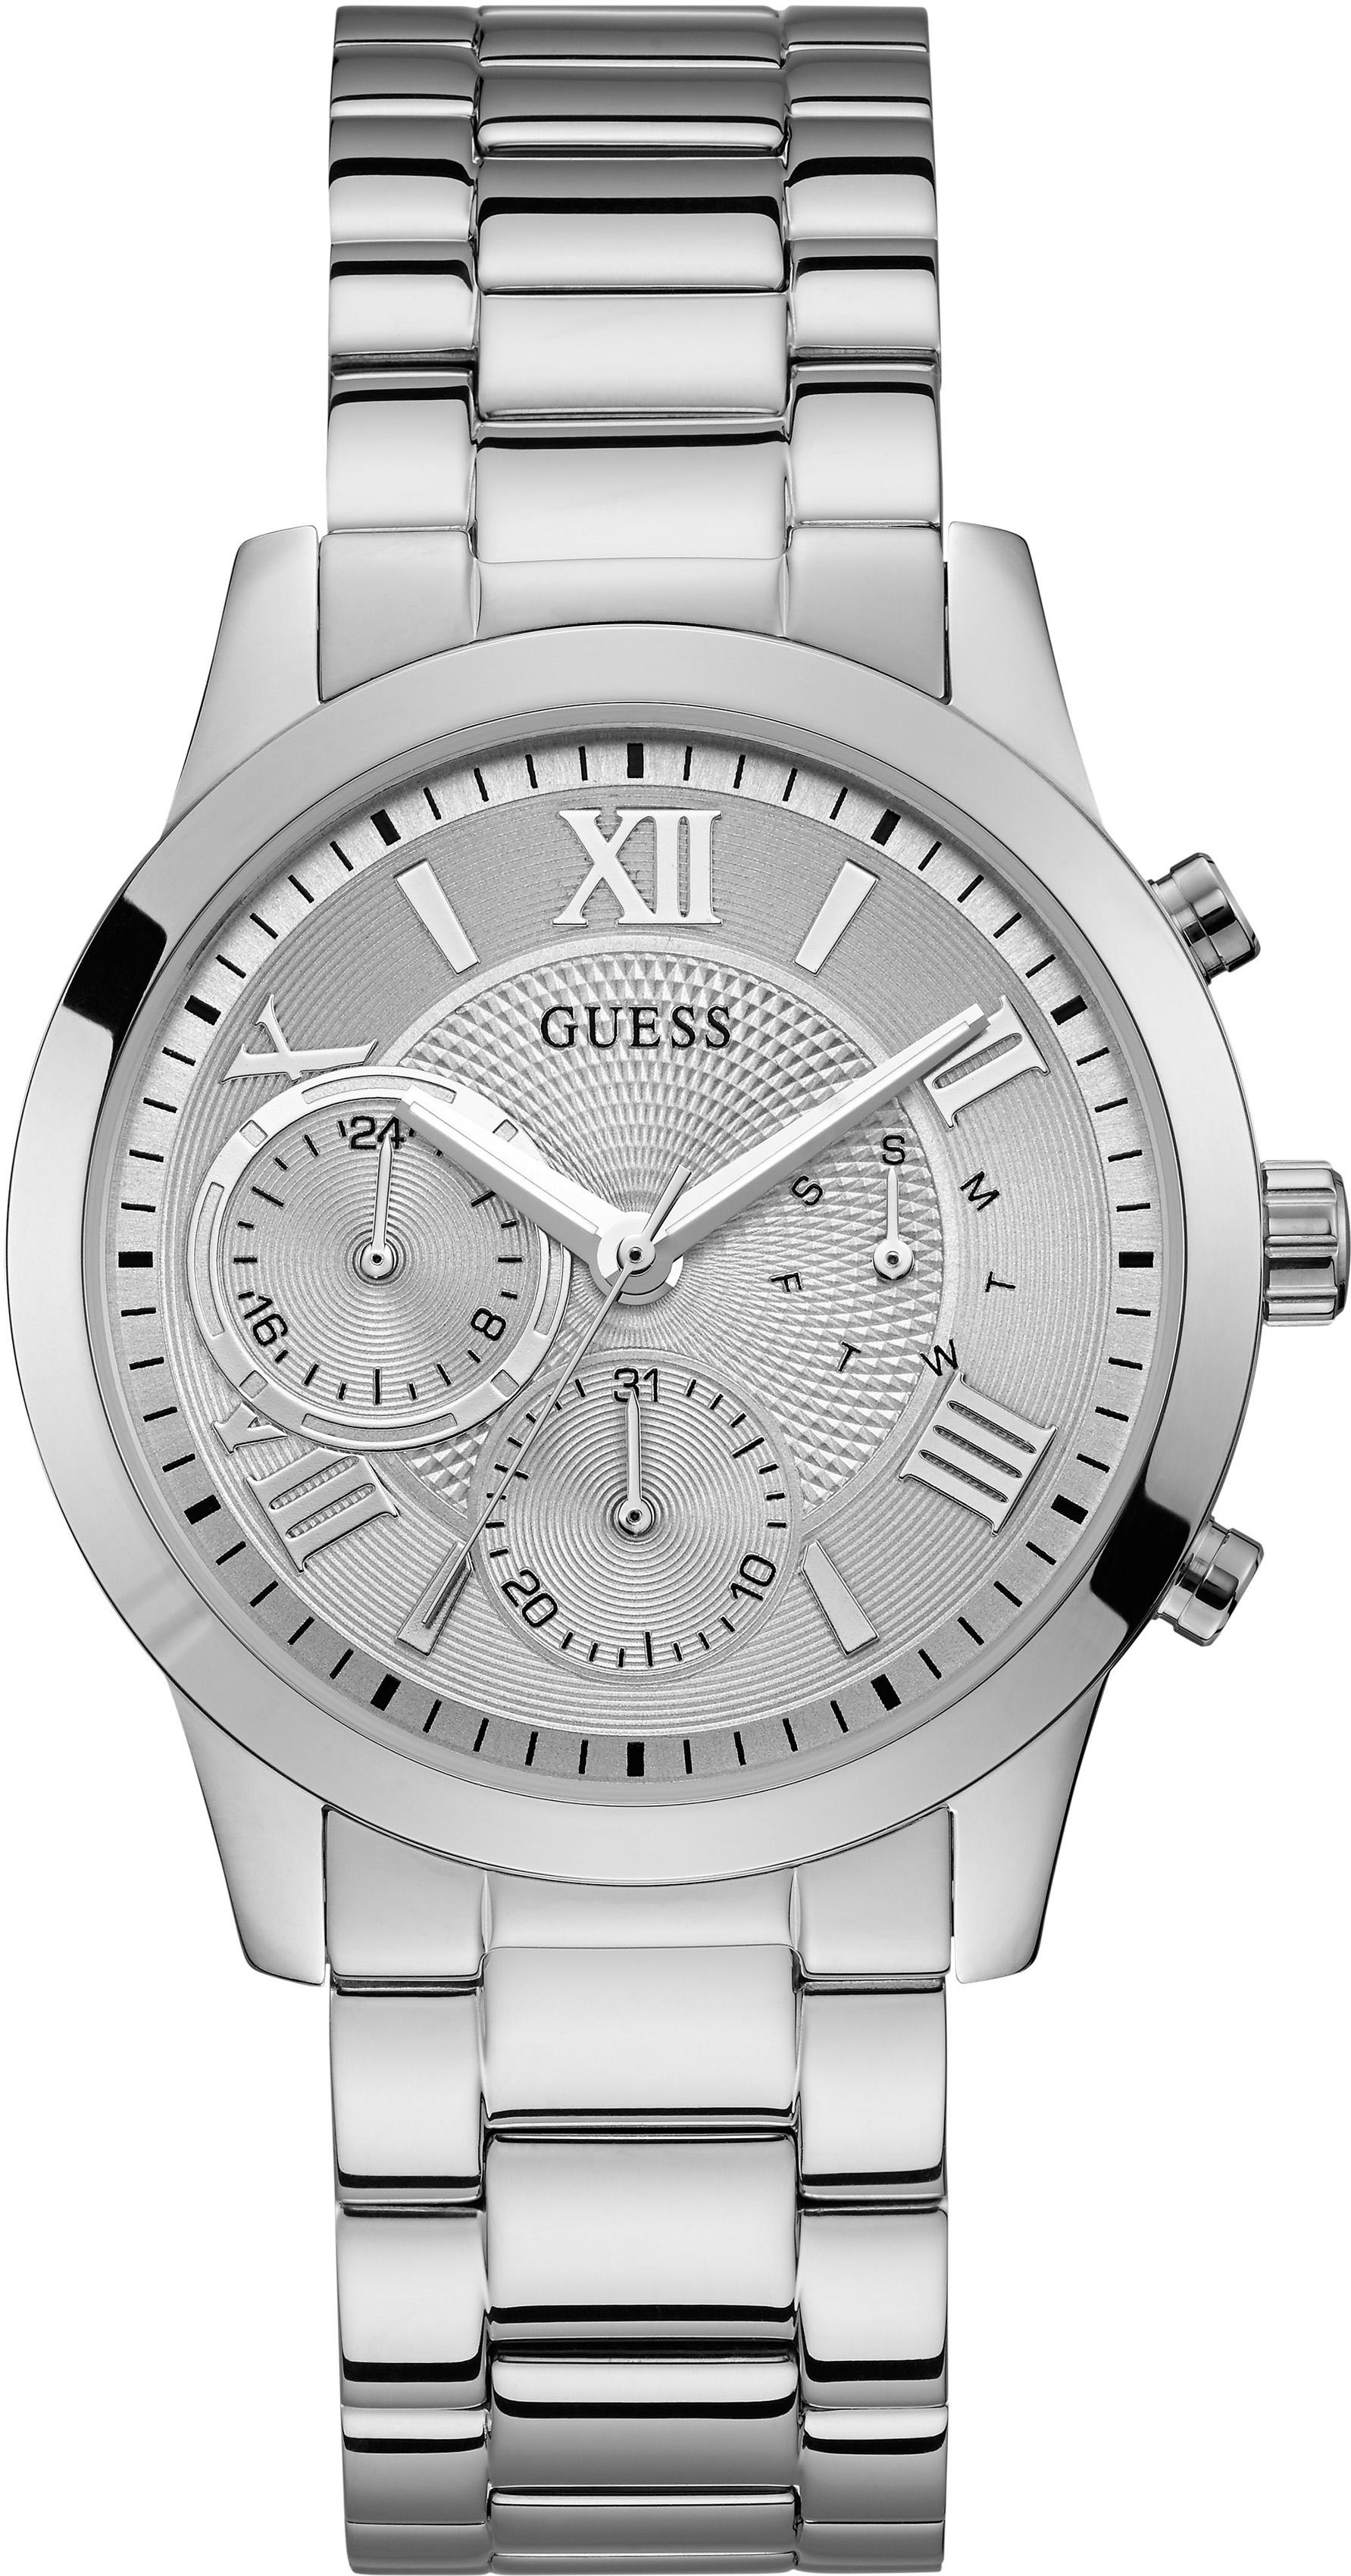 Guess Multifunktionsuhr SOLAR, W1070L1 | Uhren > Multifunktionsuhren | Guess